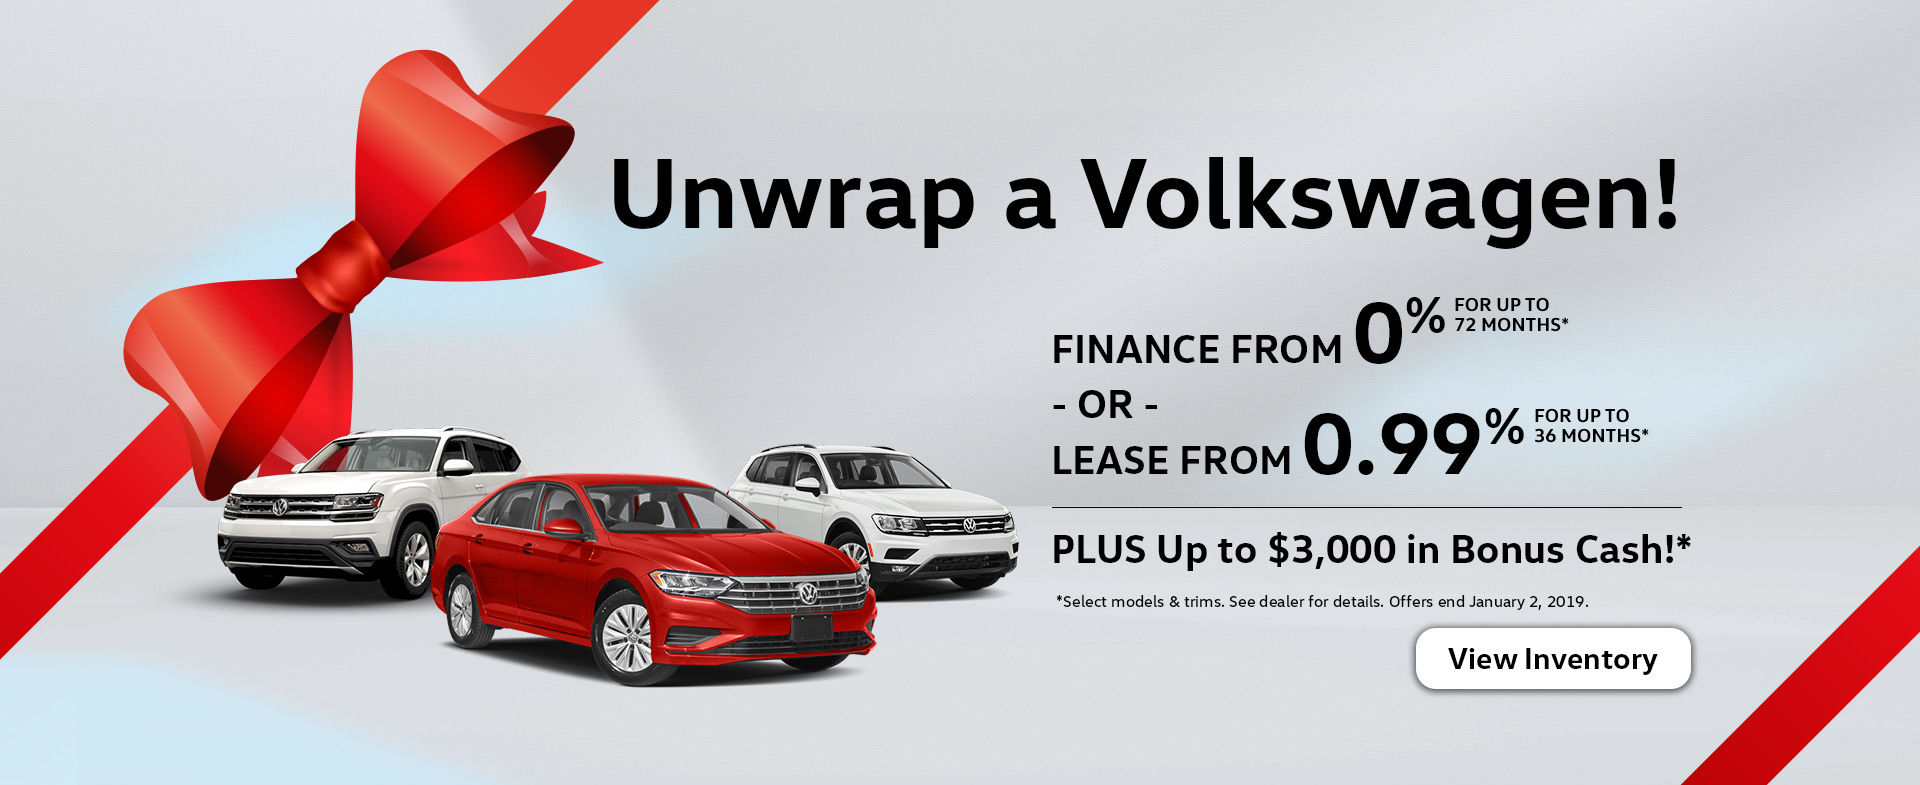 Unwrap a Volkswagen this December